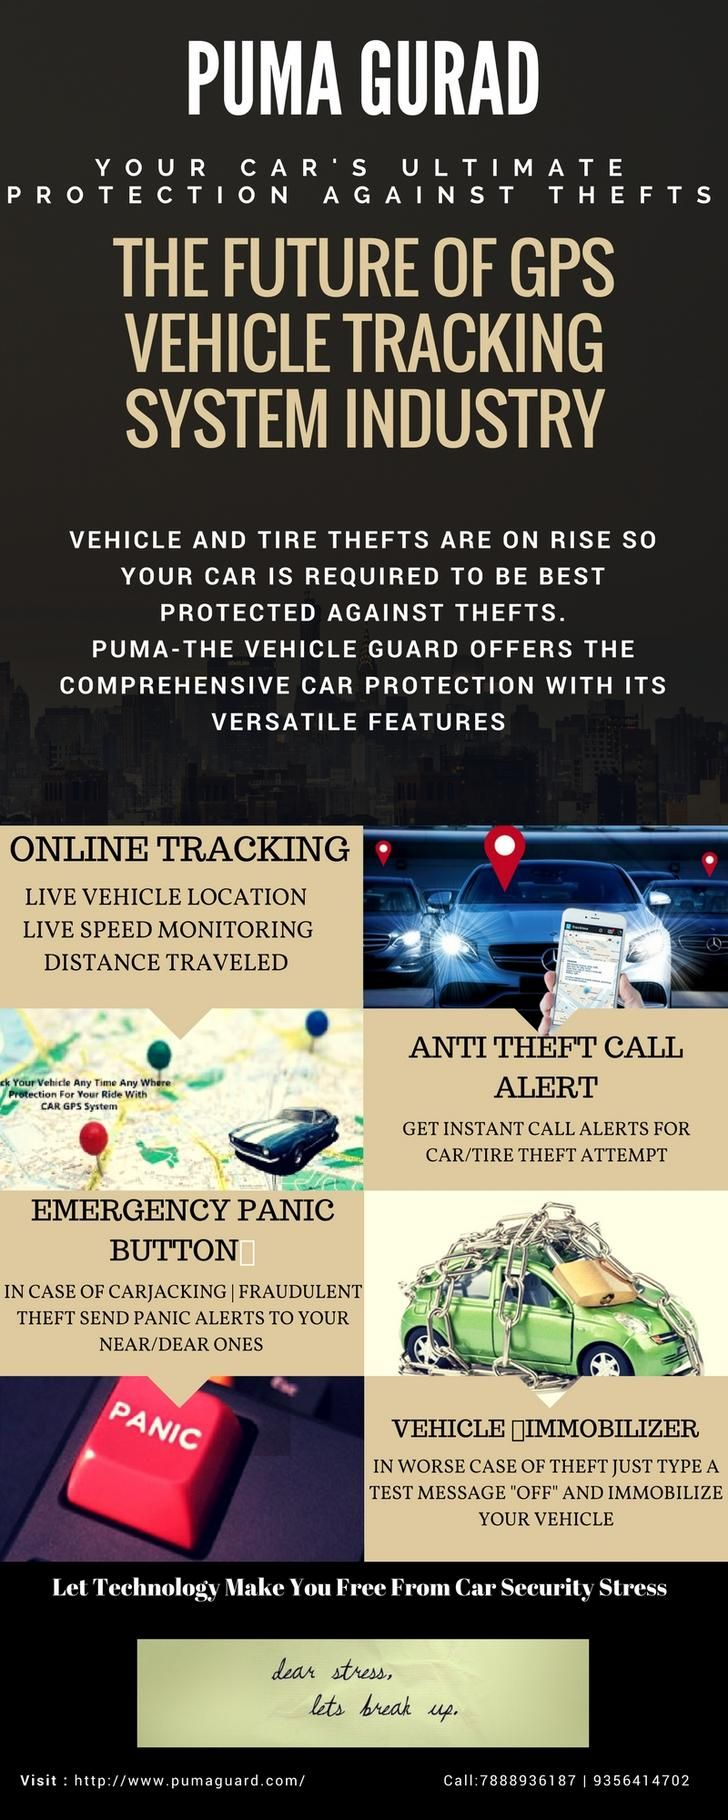 Puma Guard: Chandigarh India's best #GPS #Vehicle #Tracking system offer #Anti #car #Tyre #Theft #Call alert system to ensure complete security of your beloved vehicle against thefts. Visit : http://www.pumaguard.com/